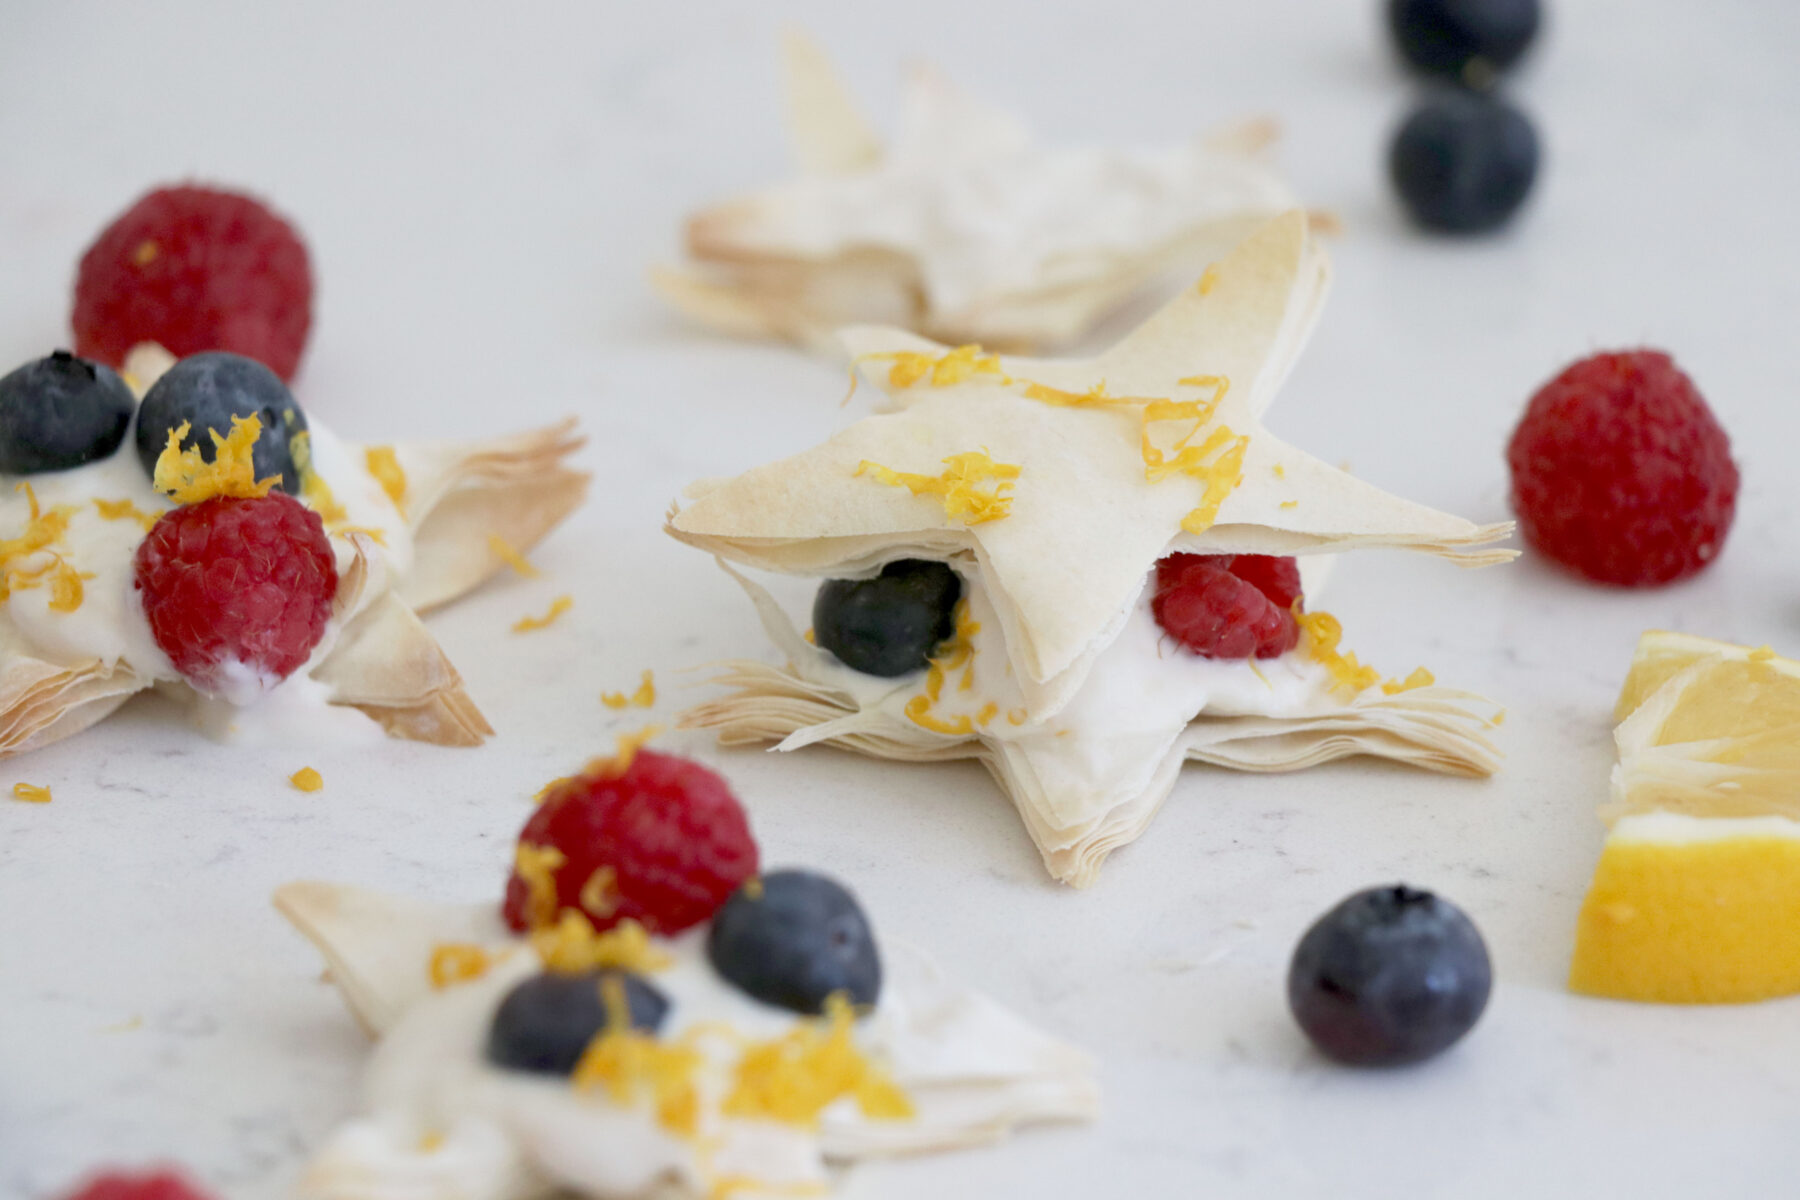 Lemon stars made from puff pastry topped with berries and lemon zest.